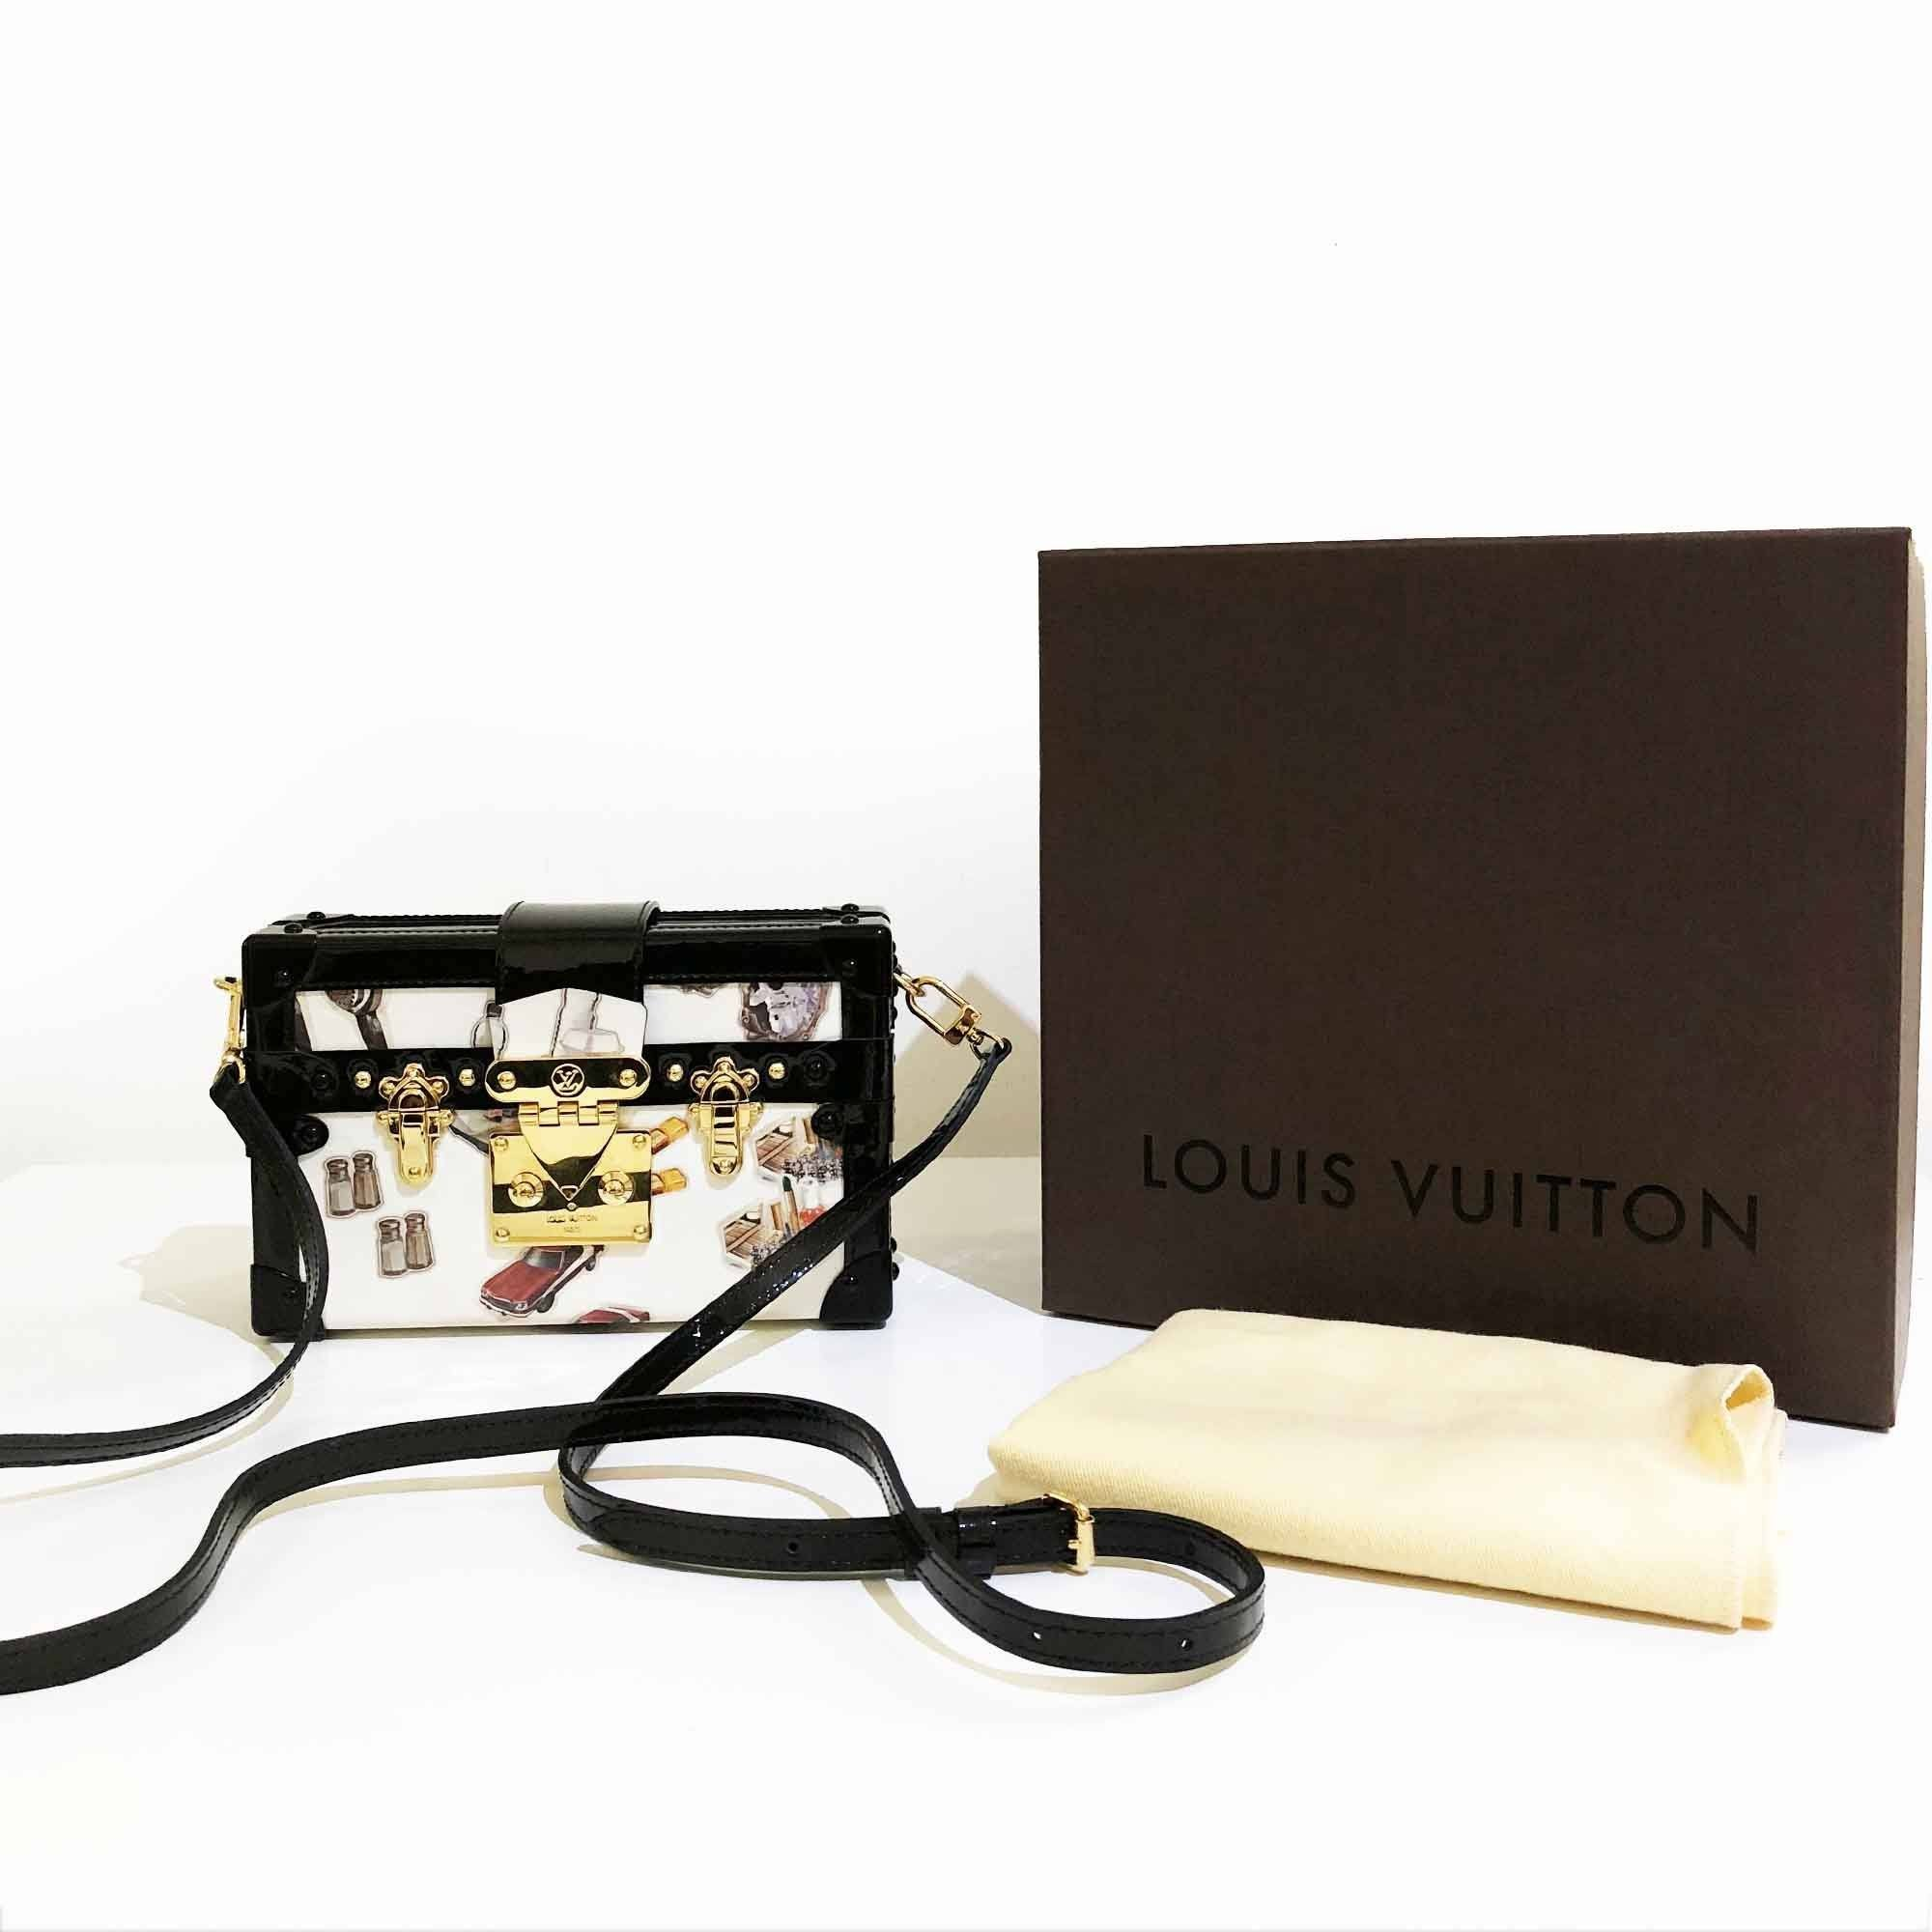 Louis Vuitton Petite Malle Ltd Edition Stickers Monogram Vernis